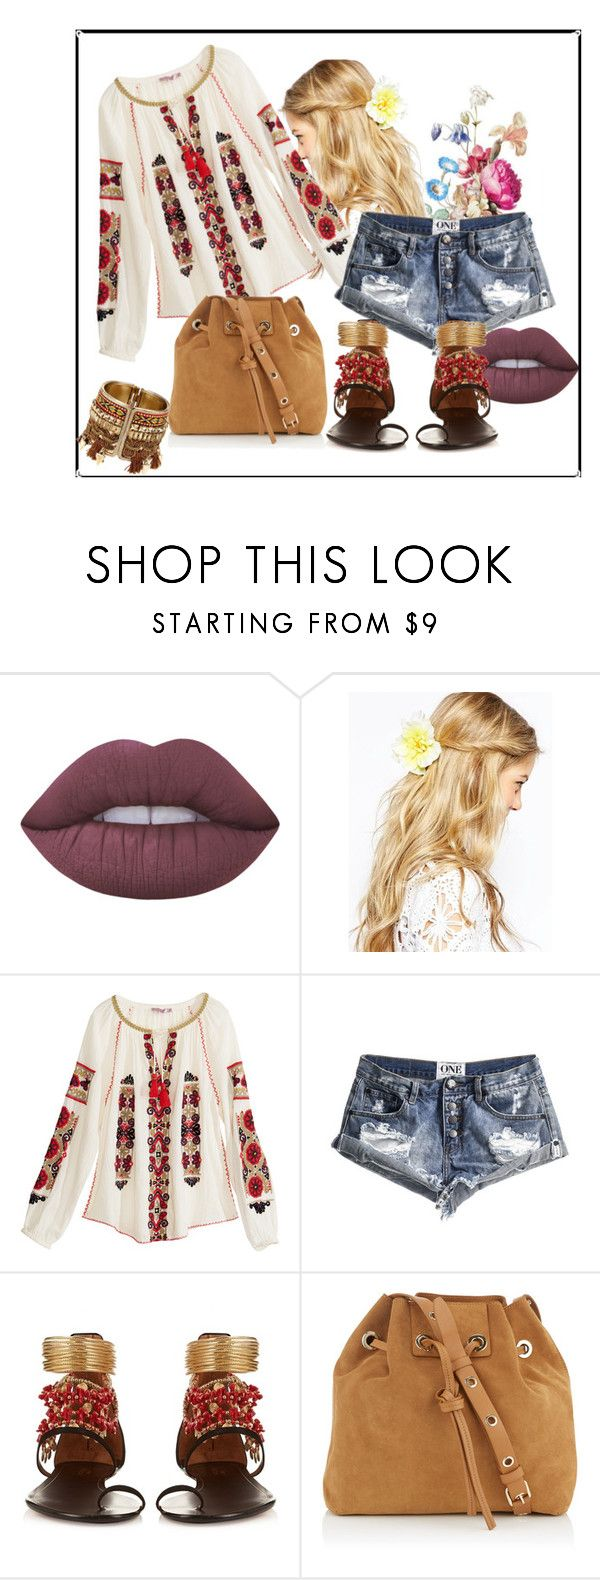 Rustic Romanian Ie by raluca-belu on Polyvore featuring Calypso St. Barth, One Teaspoon, Aquazzura, Vanessa Bruno, ASOS, Lime Crime and rustic